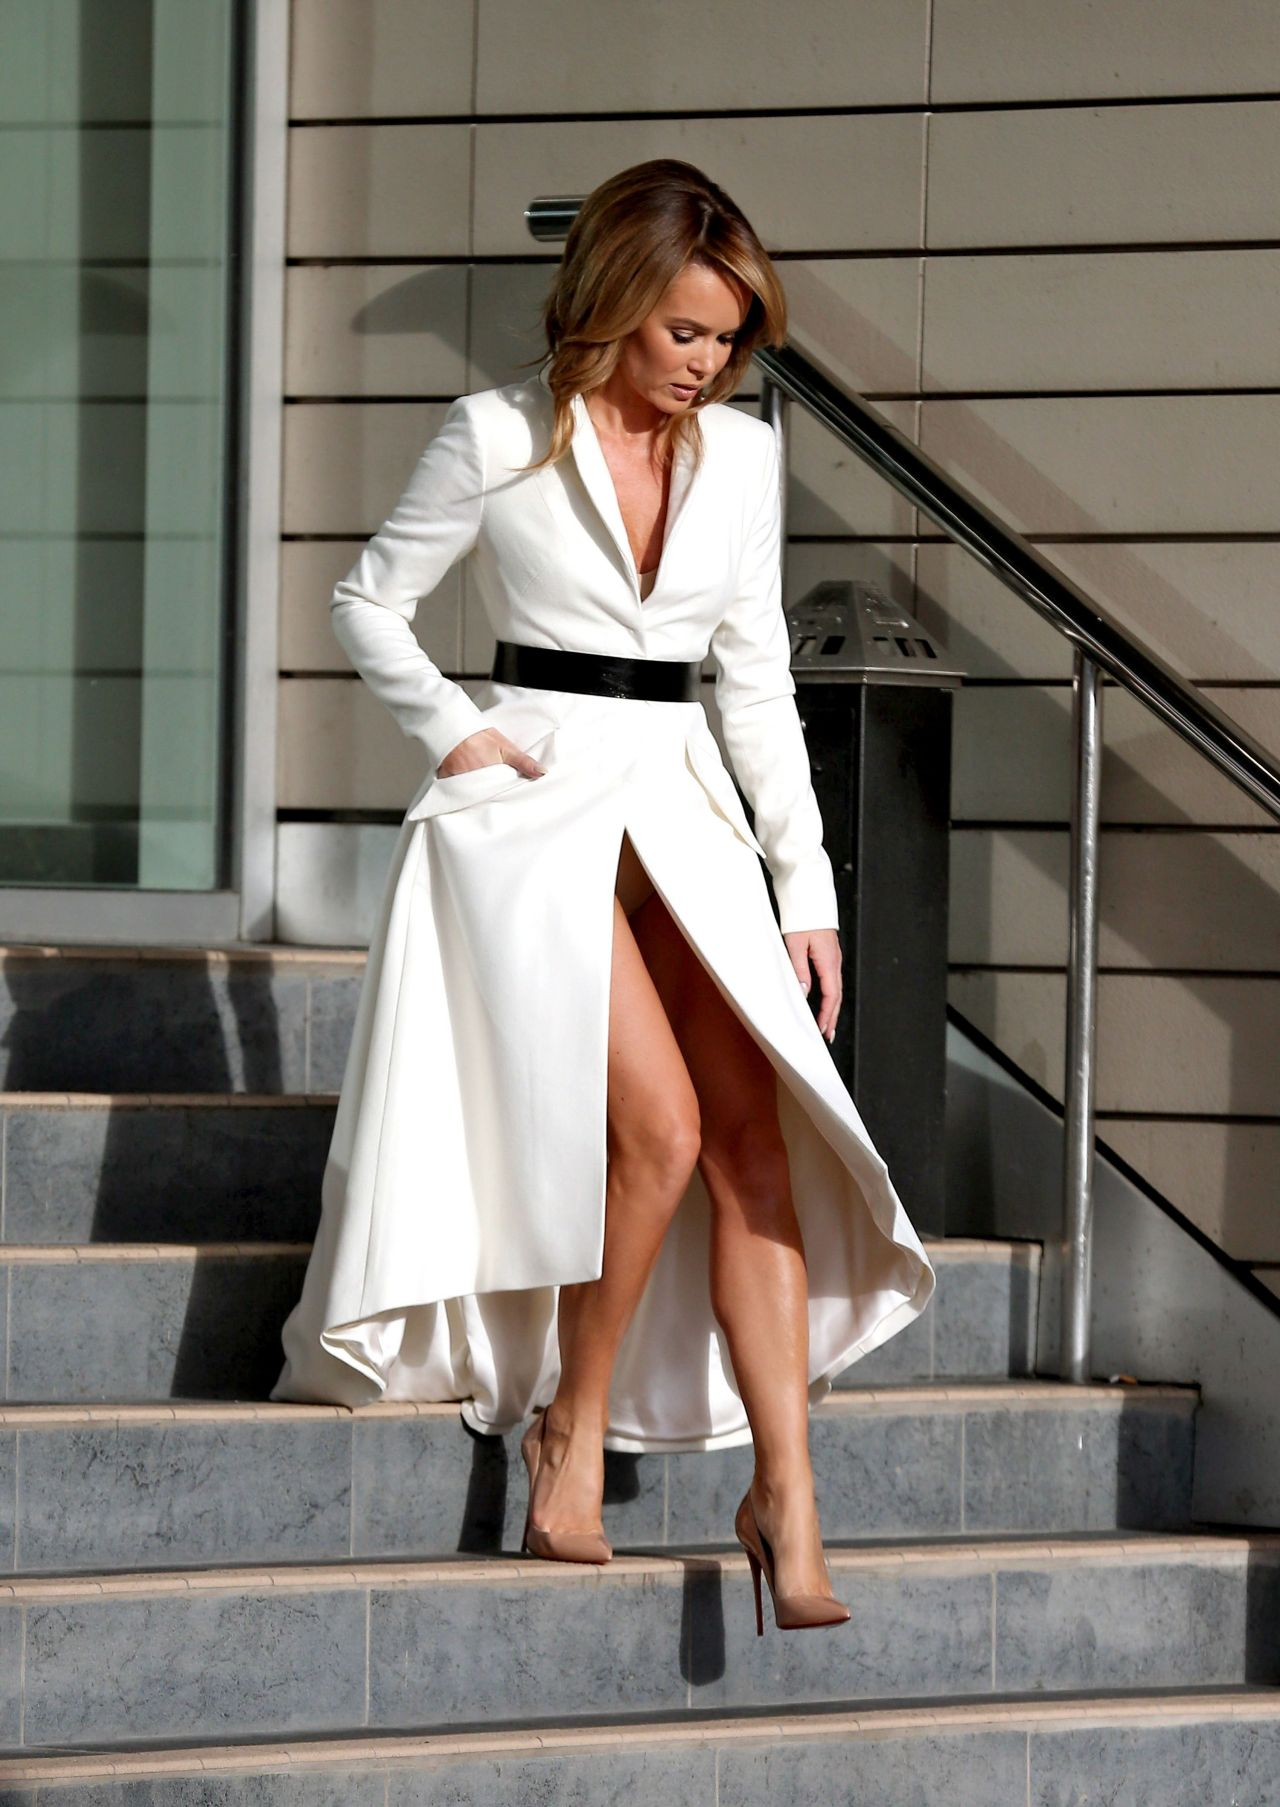 Amanda Holden - Britains Got Talent Auditions In Manchester, January 2015-6159